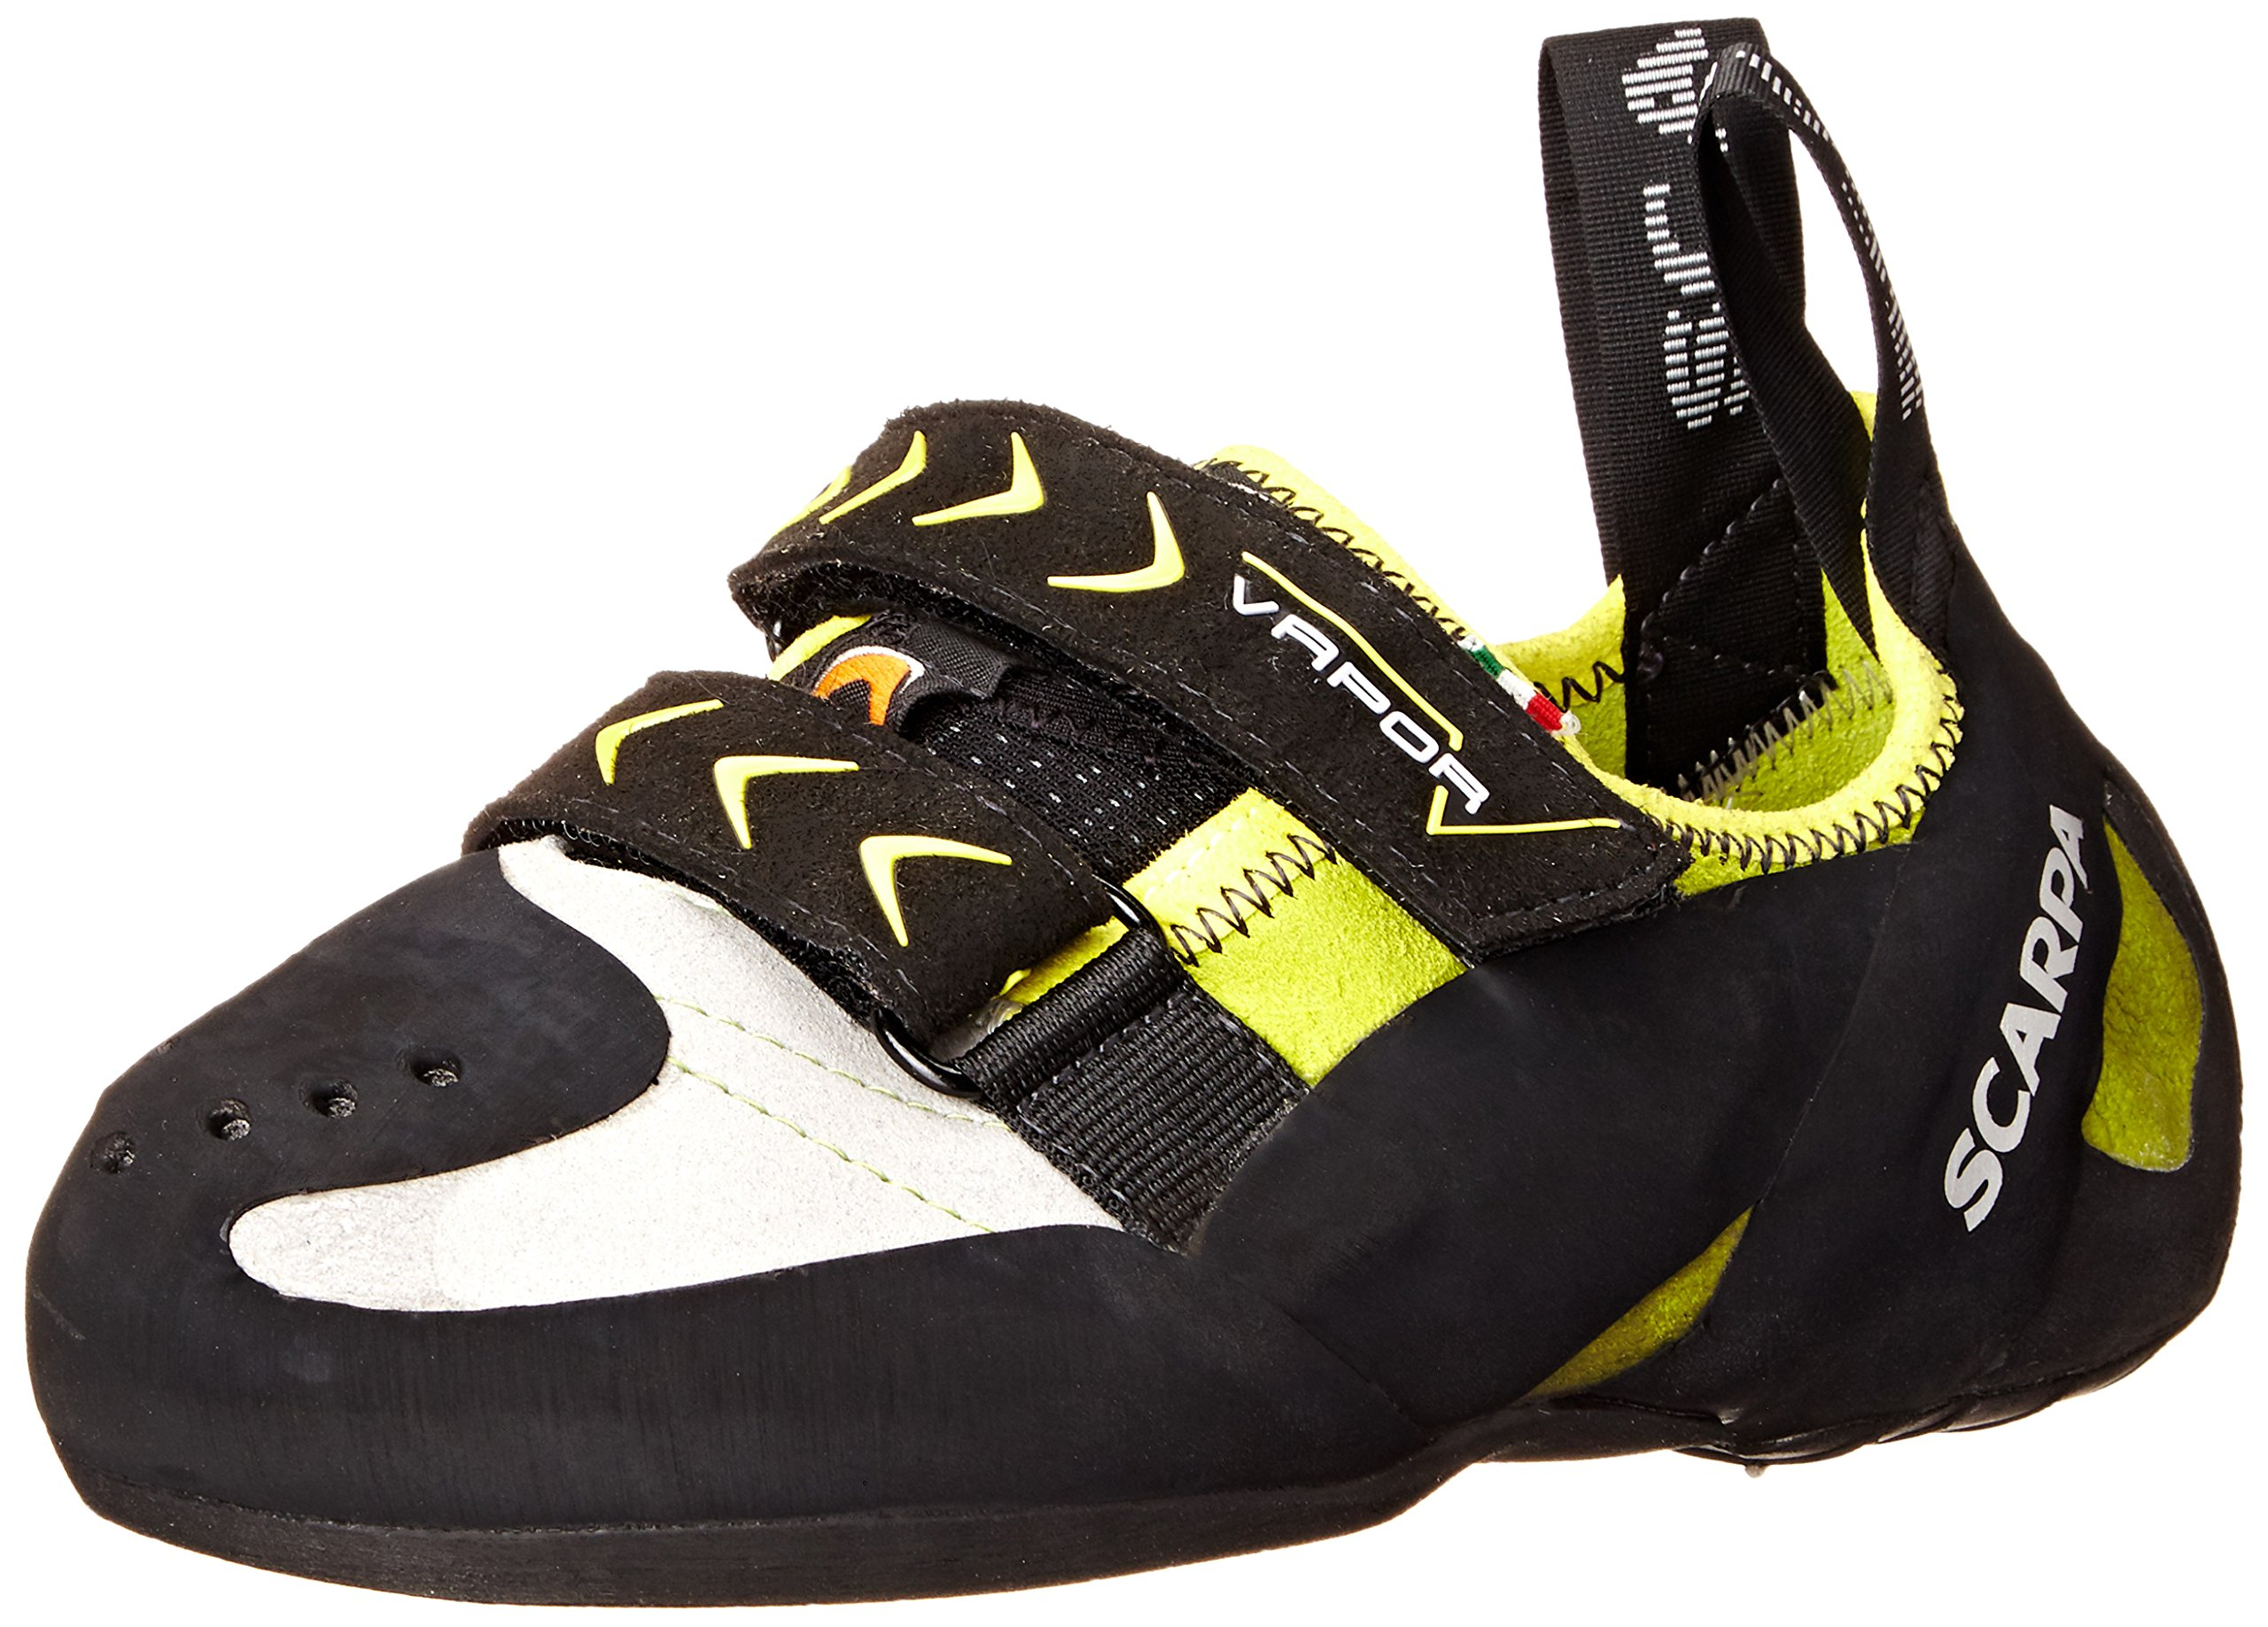 Scarpa Men's Vapor V Climbing Shoe, Lime, 43 EU/10 M US